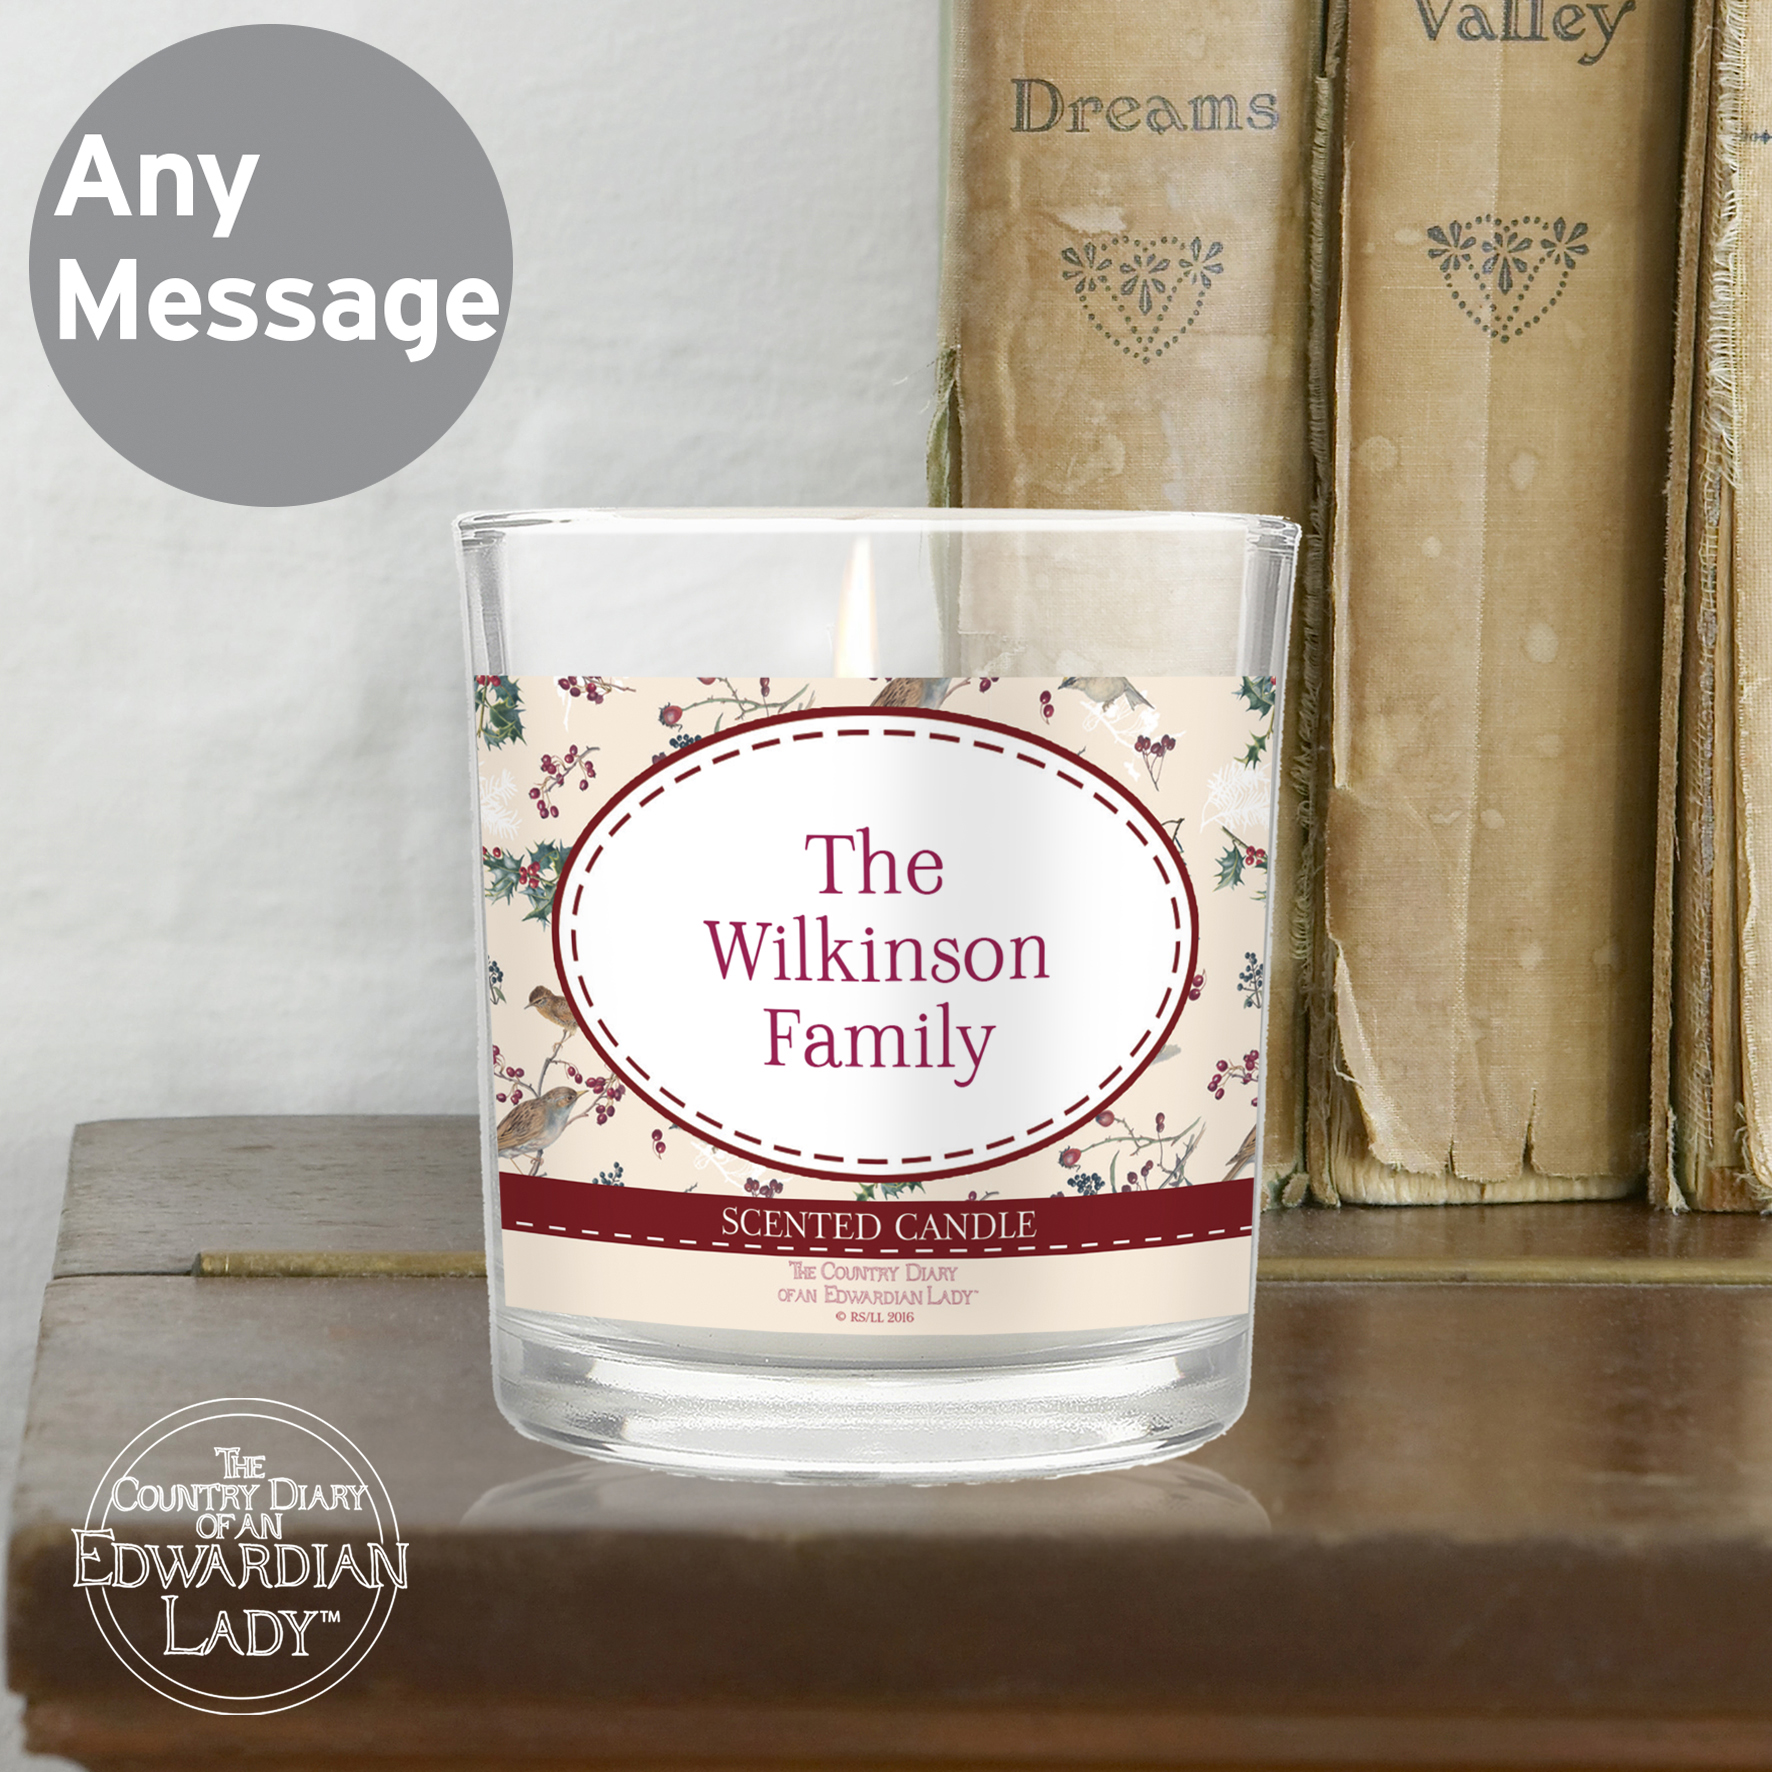 Personalised Country Diary Midwinter Jar Candle